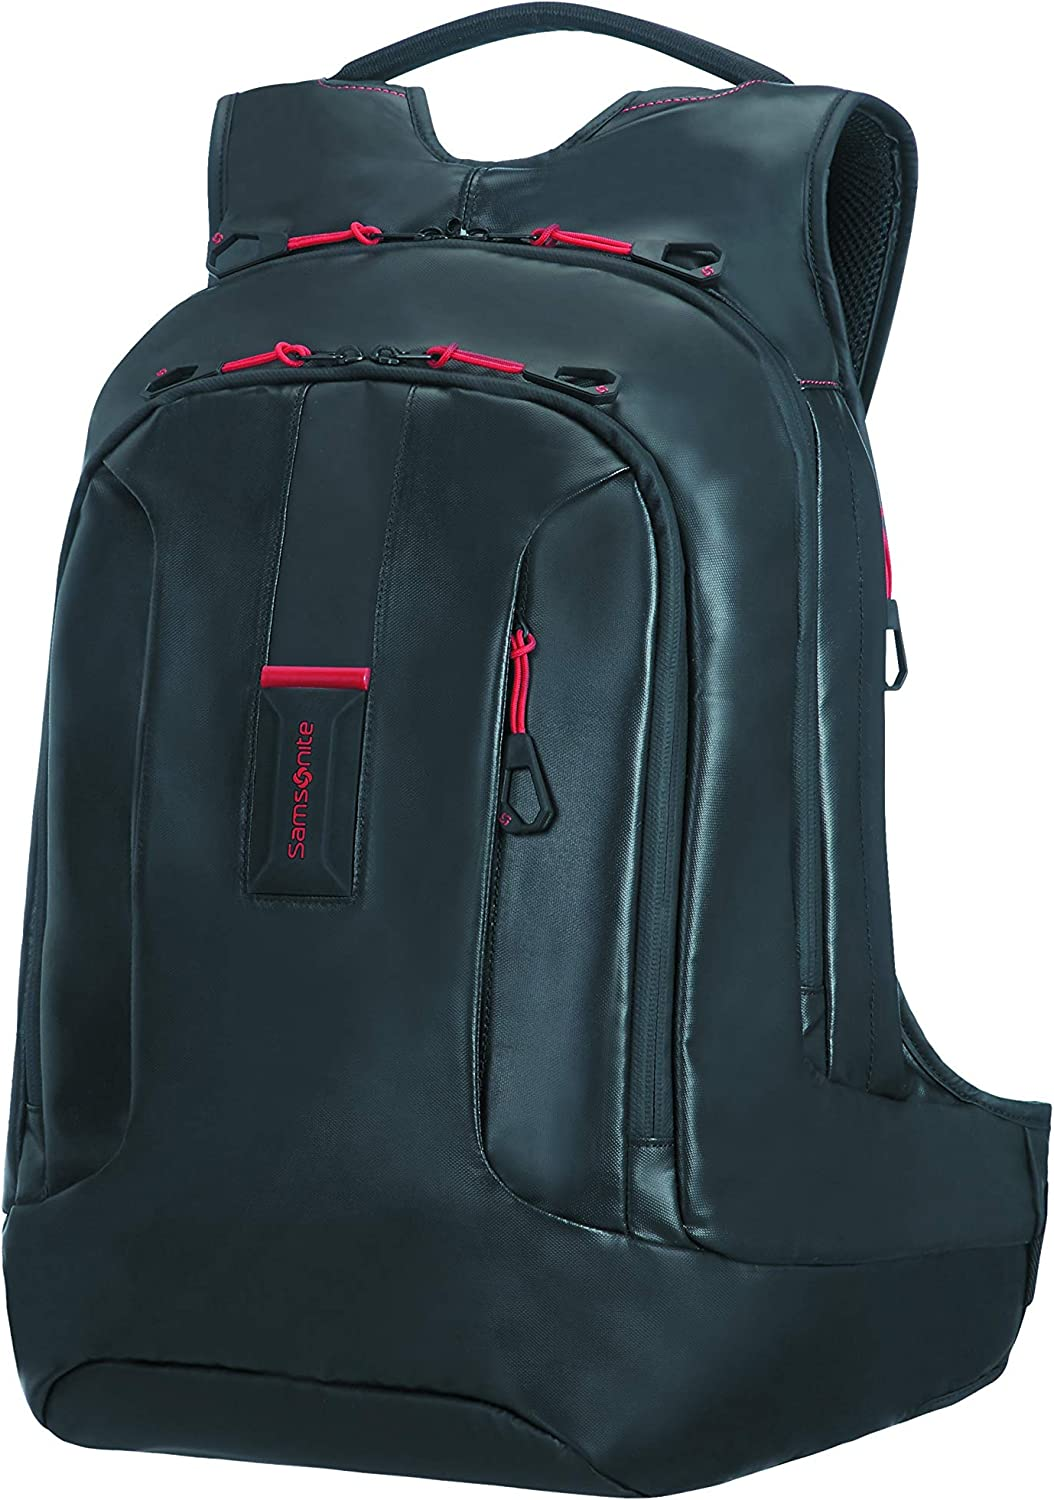 Mochila Samsonite modelo Paradiver Light Negro